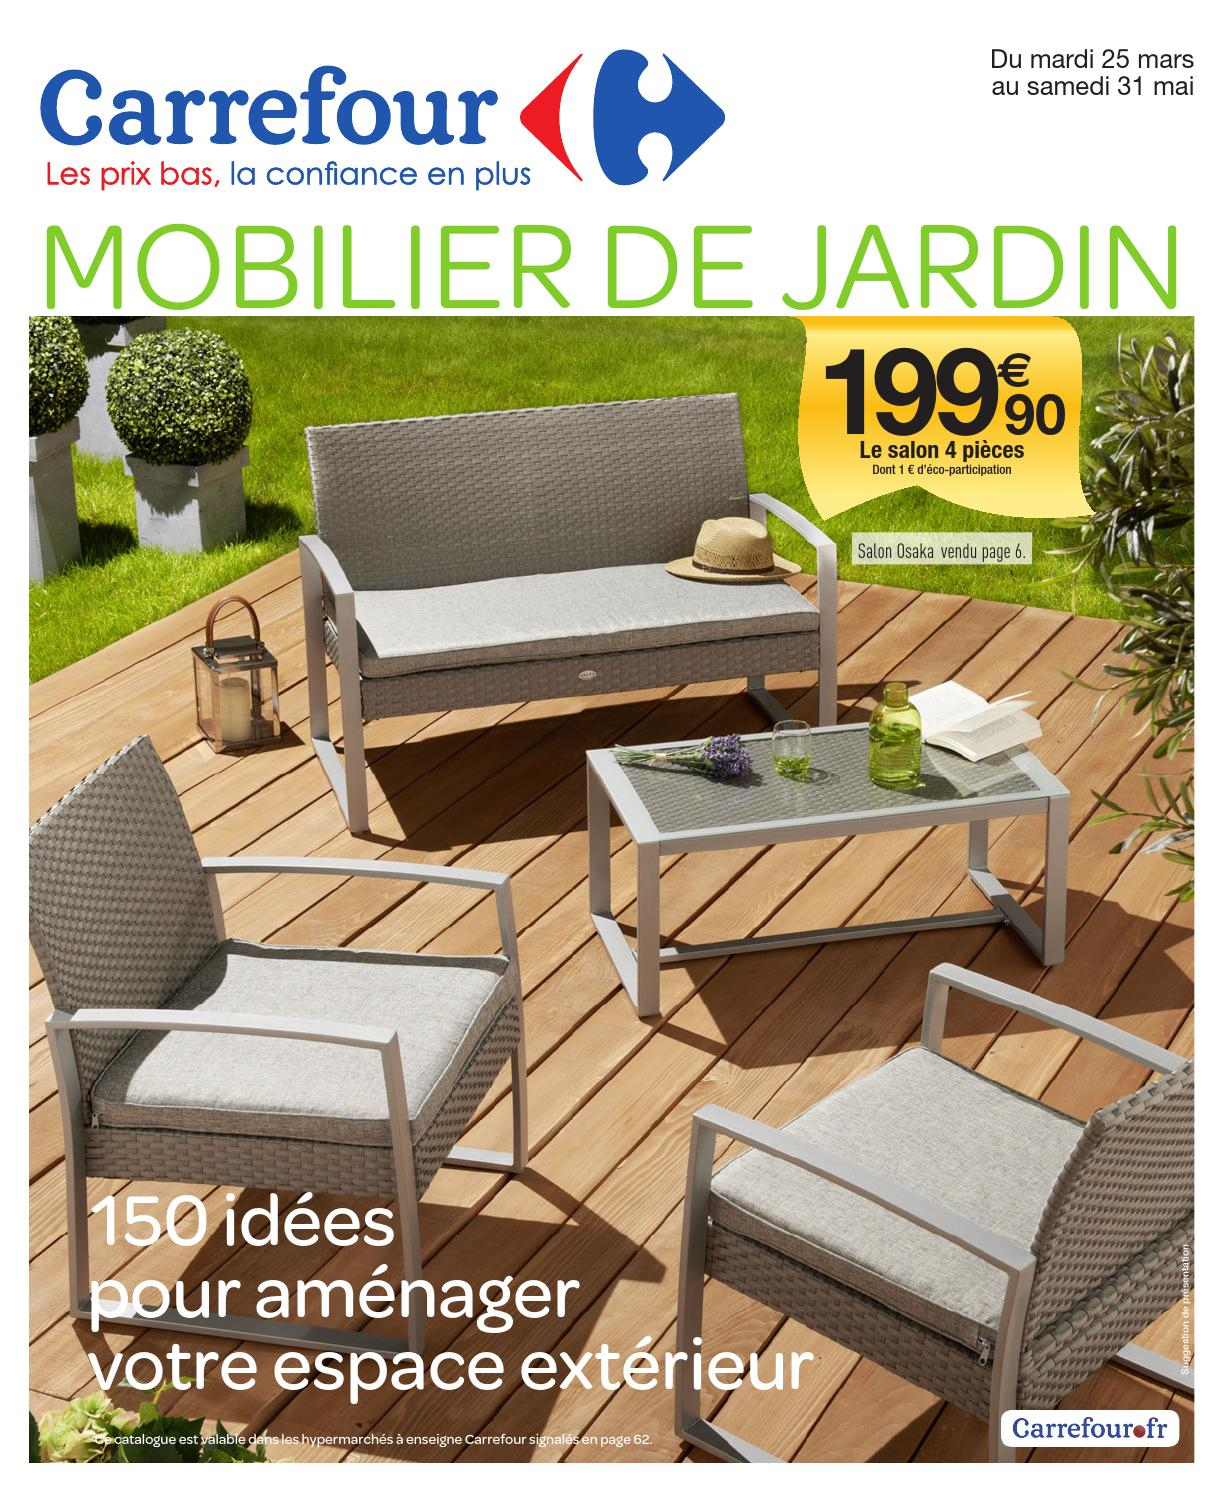 Catalogue Carrefour - 25.03-31.05.2014 By Joe Monroe - Issuu tout Mobilier De Jardin Leclerc